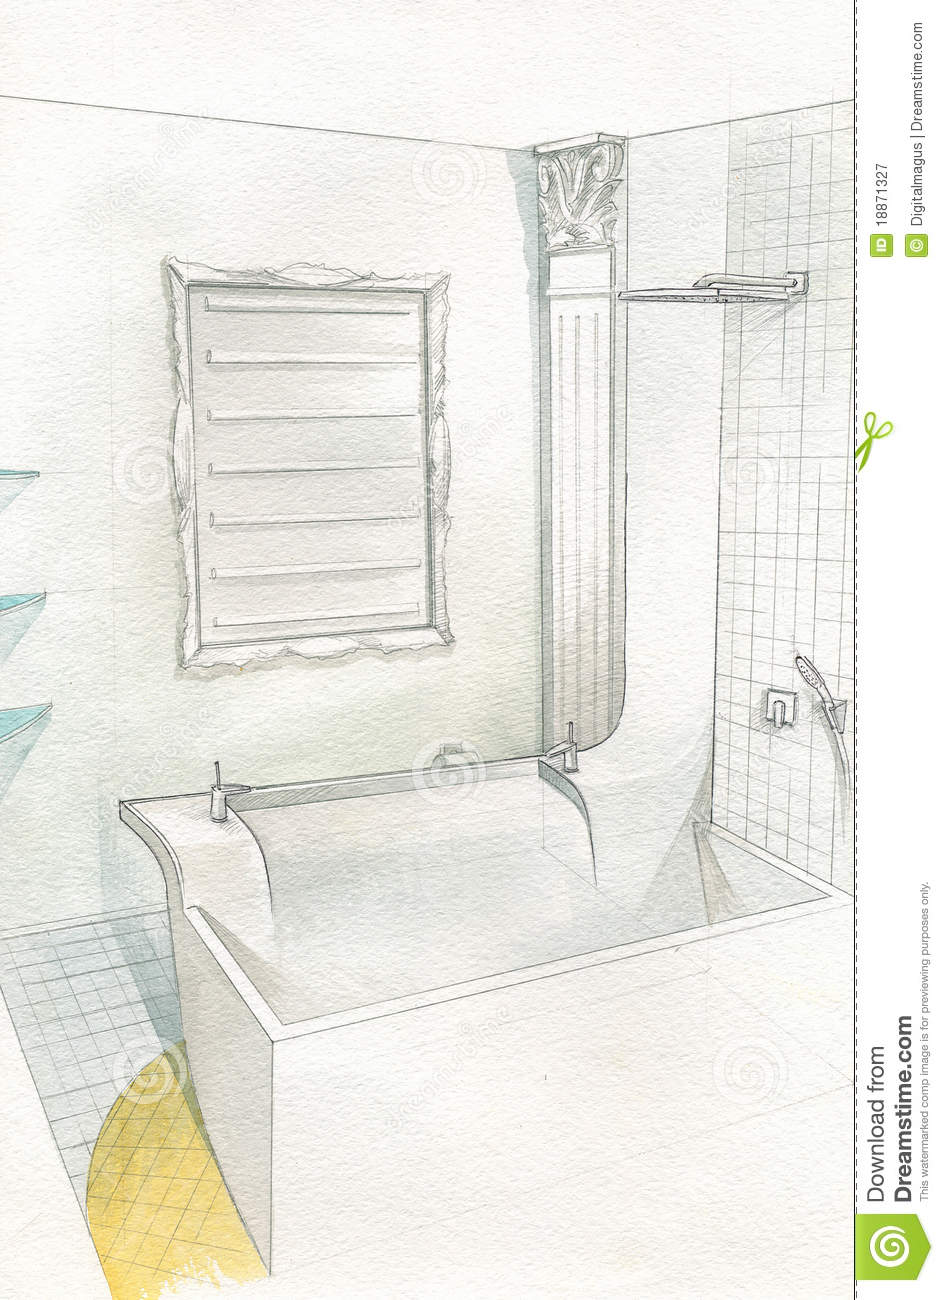 Drawing Bathroom Interior Stock Illustration Image Of Accessory 18871327